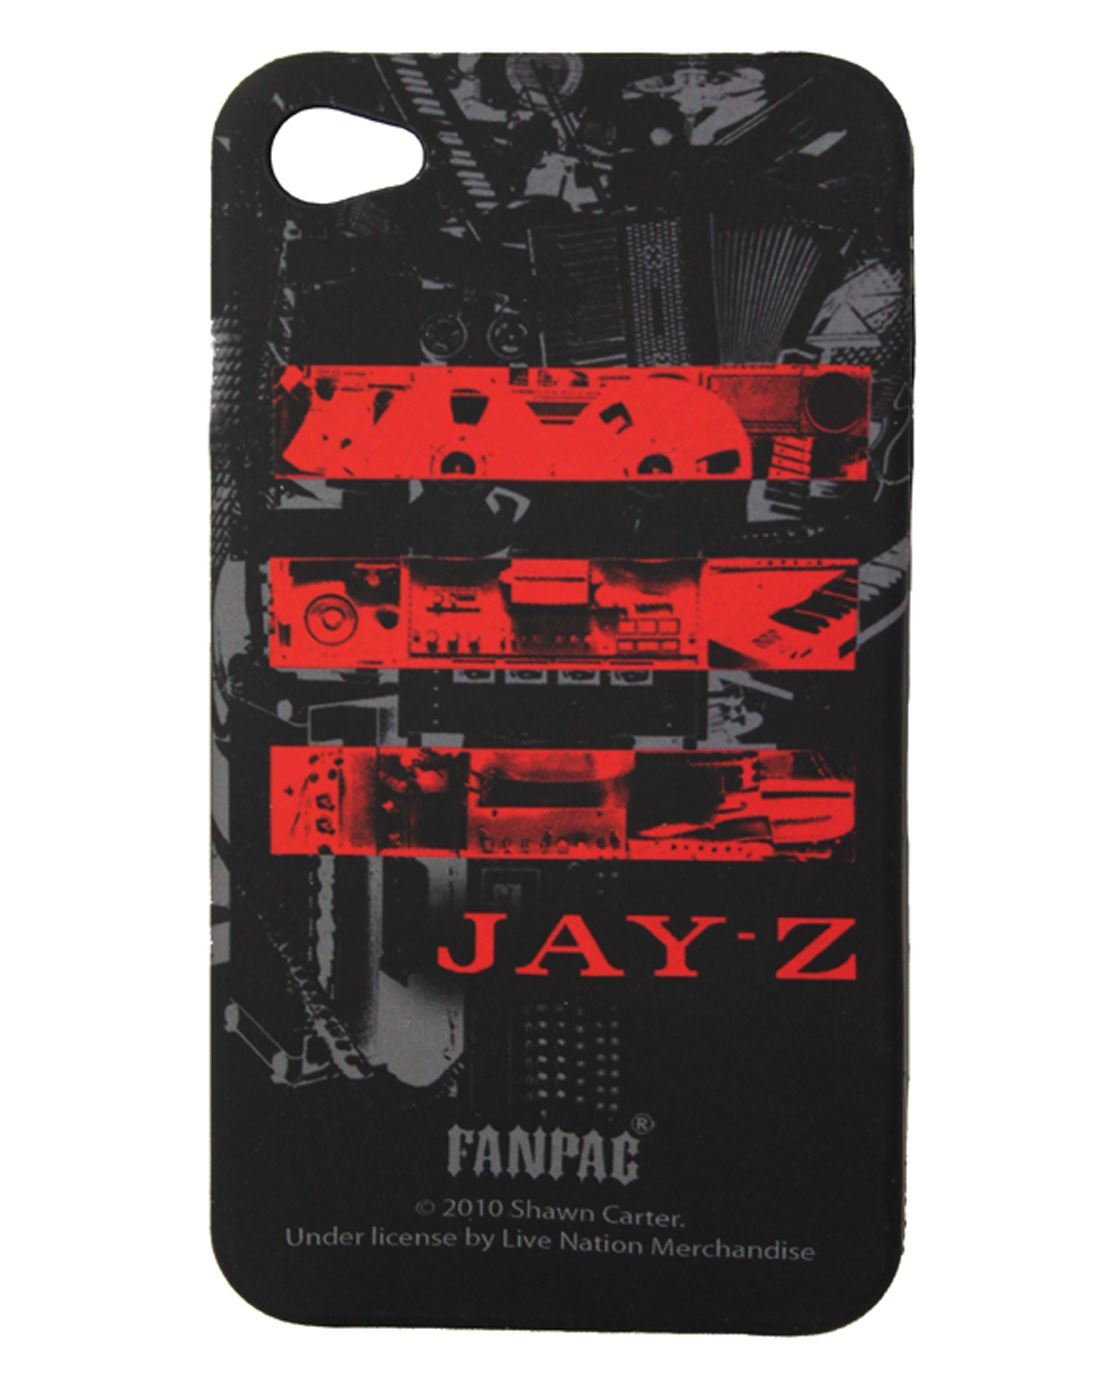 Jay z the blueprint 3 iphone 44g hard cover vanilla underground jay z the blueprint 3 iphone 44g hard cover malvernweather Gallery